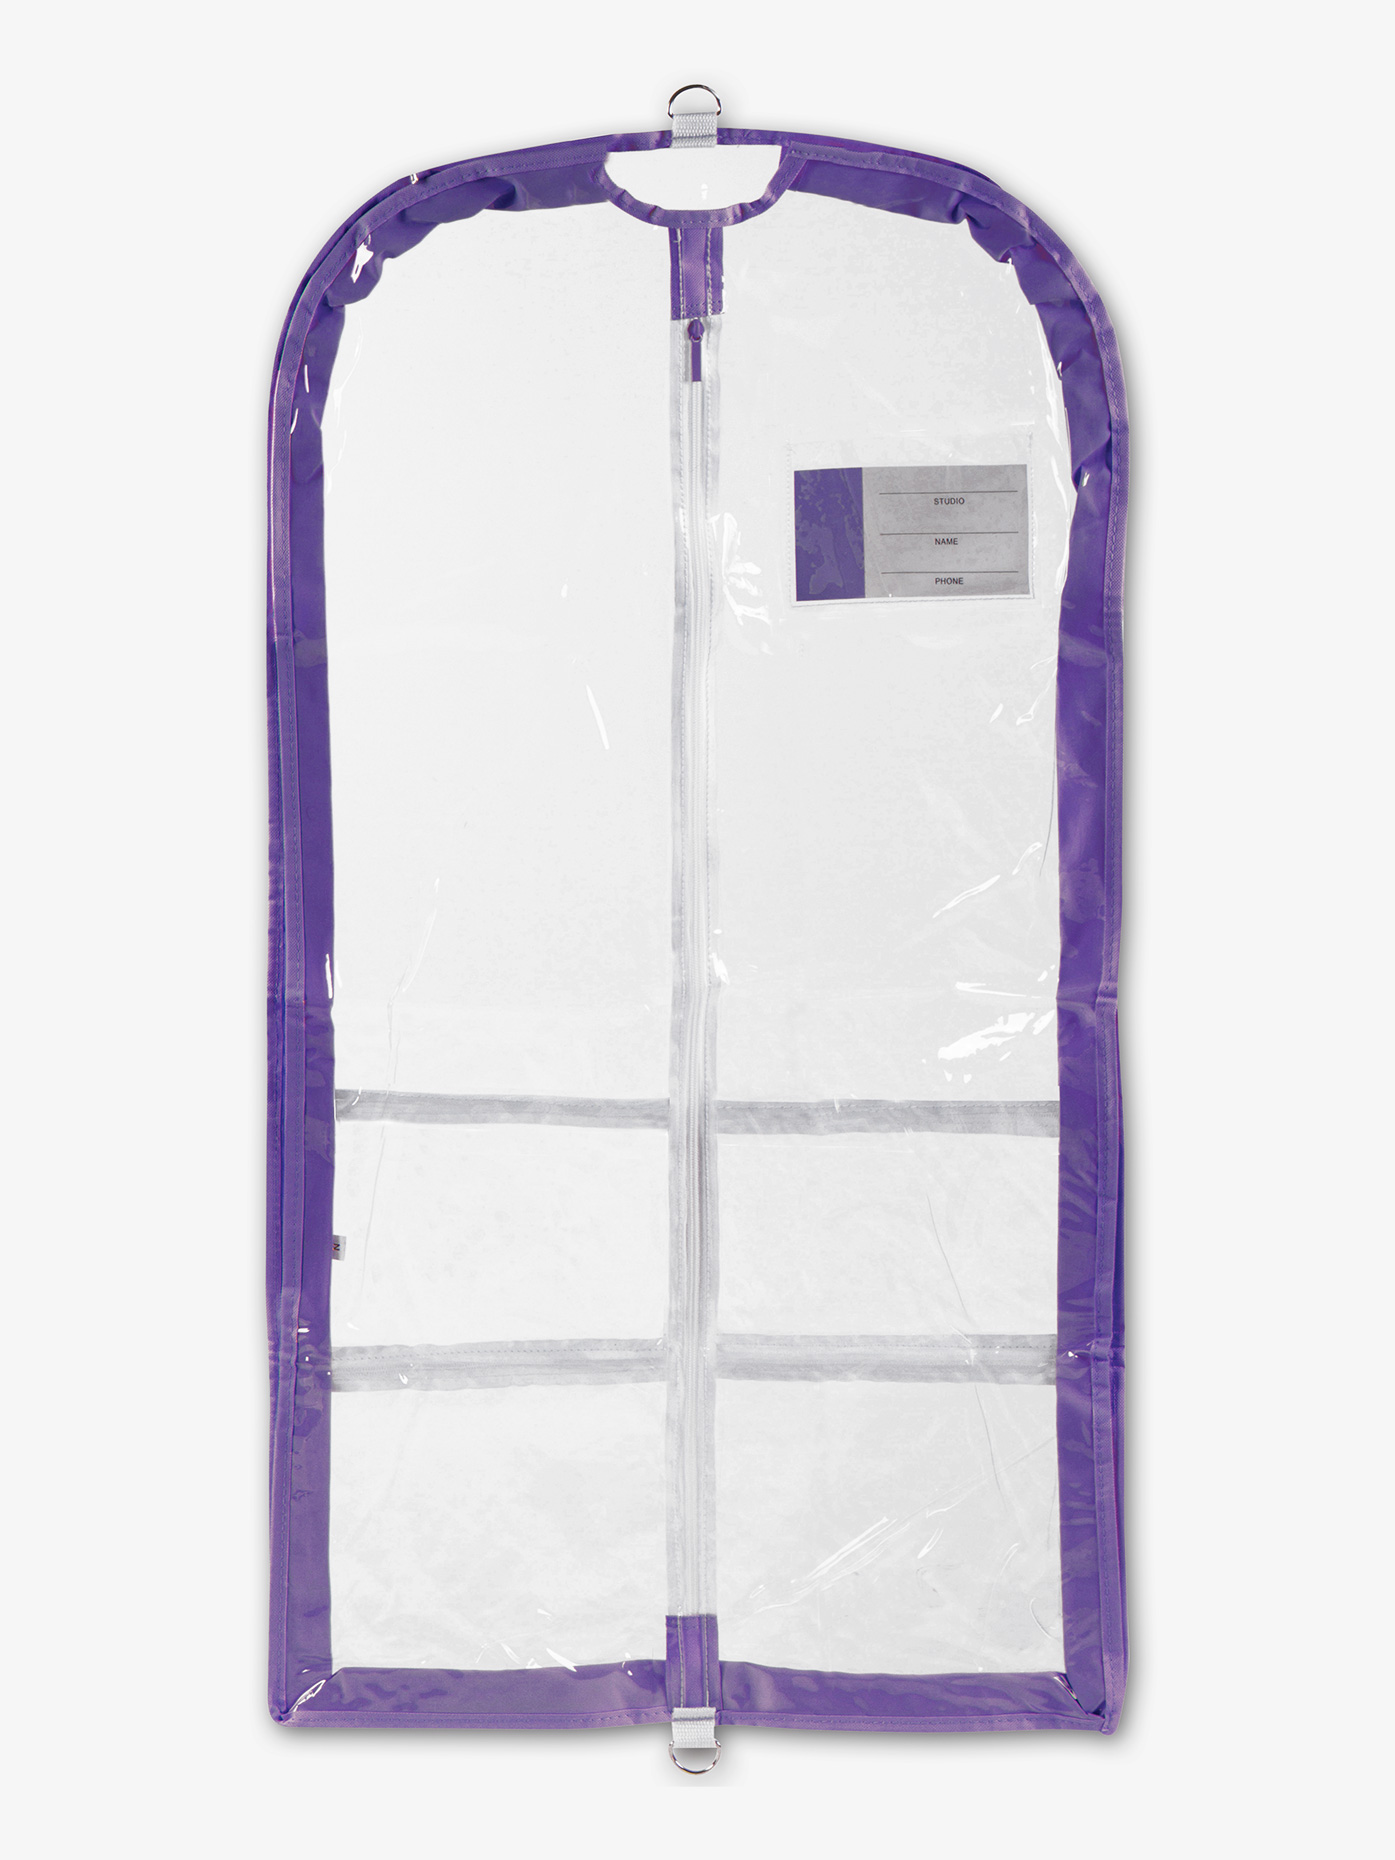 DansBagz Clear Competition Garment Bag B596LAV